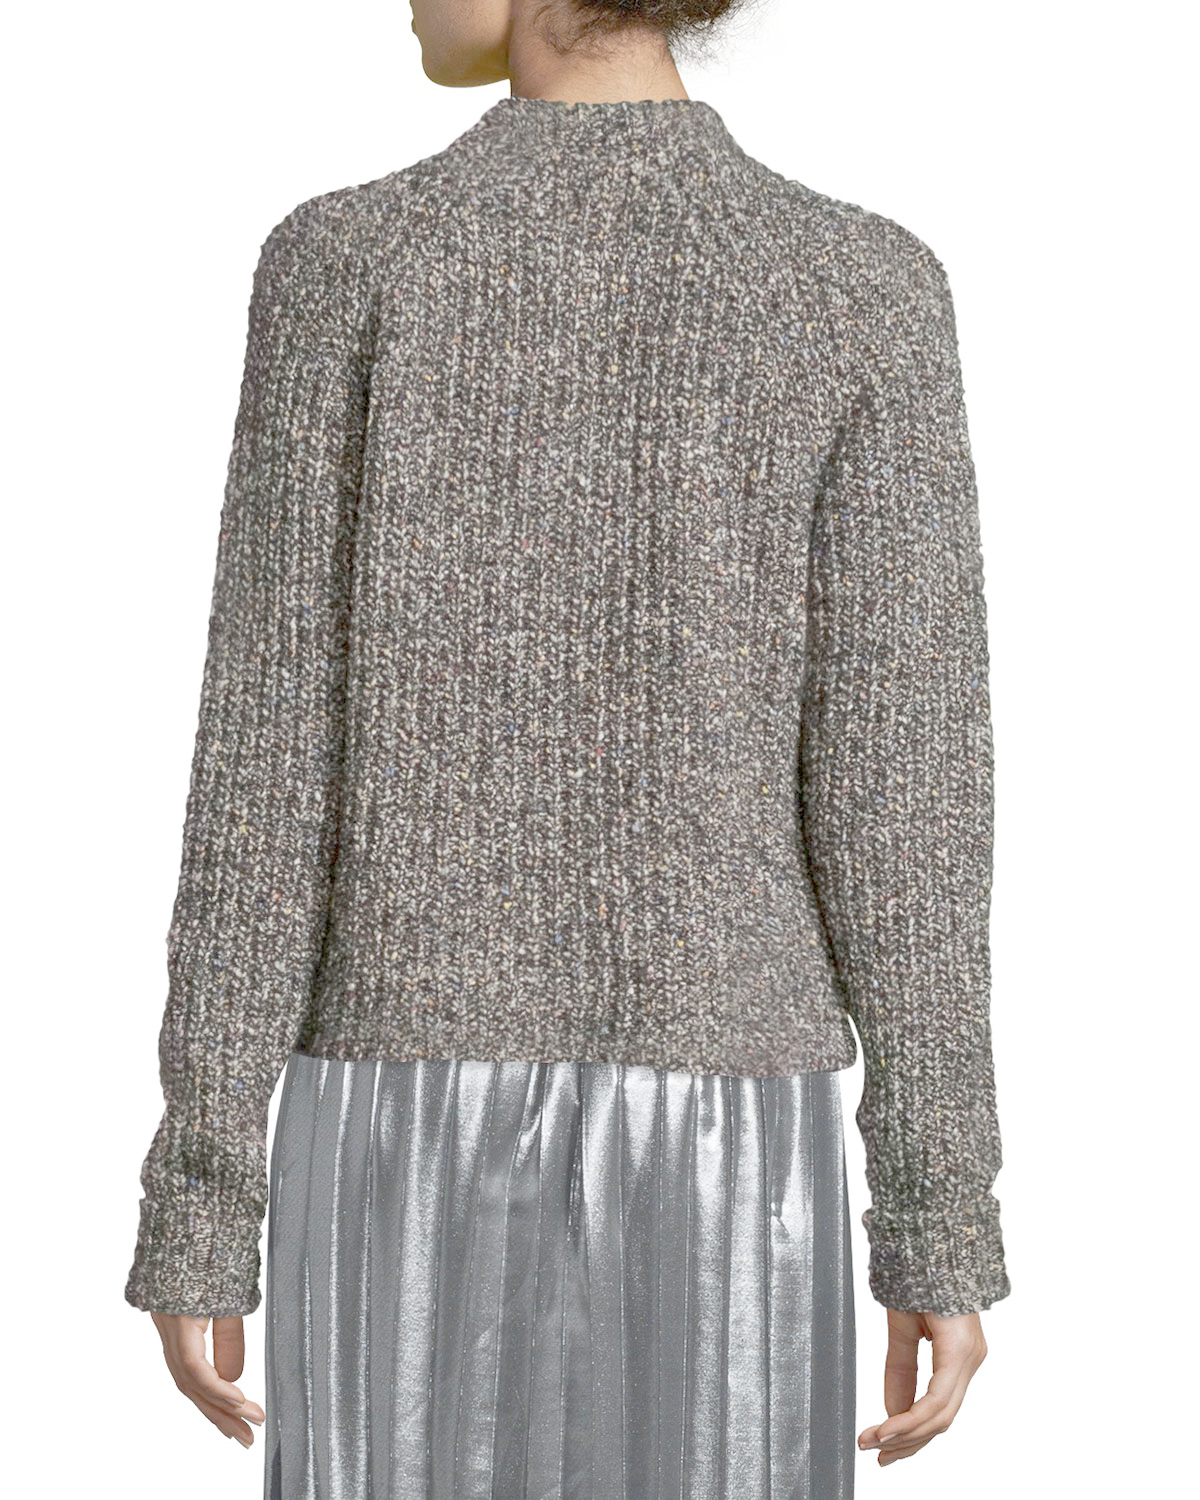 toile isabel marant happy knit pullover sweater in black lyst. Black Bedroom Furniture Sets. Home Design Ideas